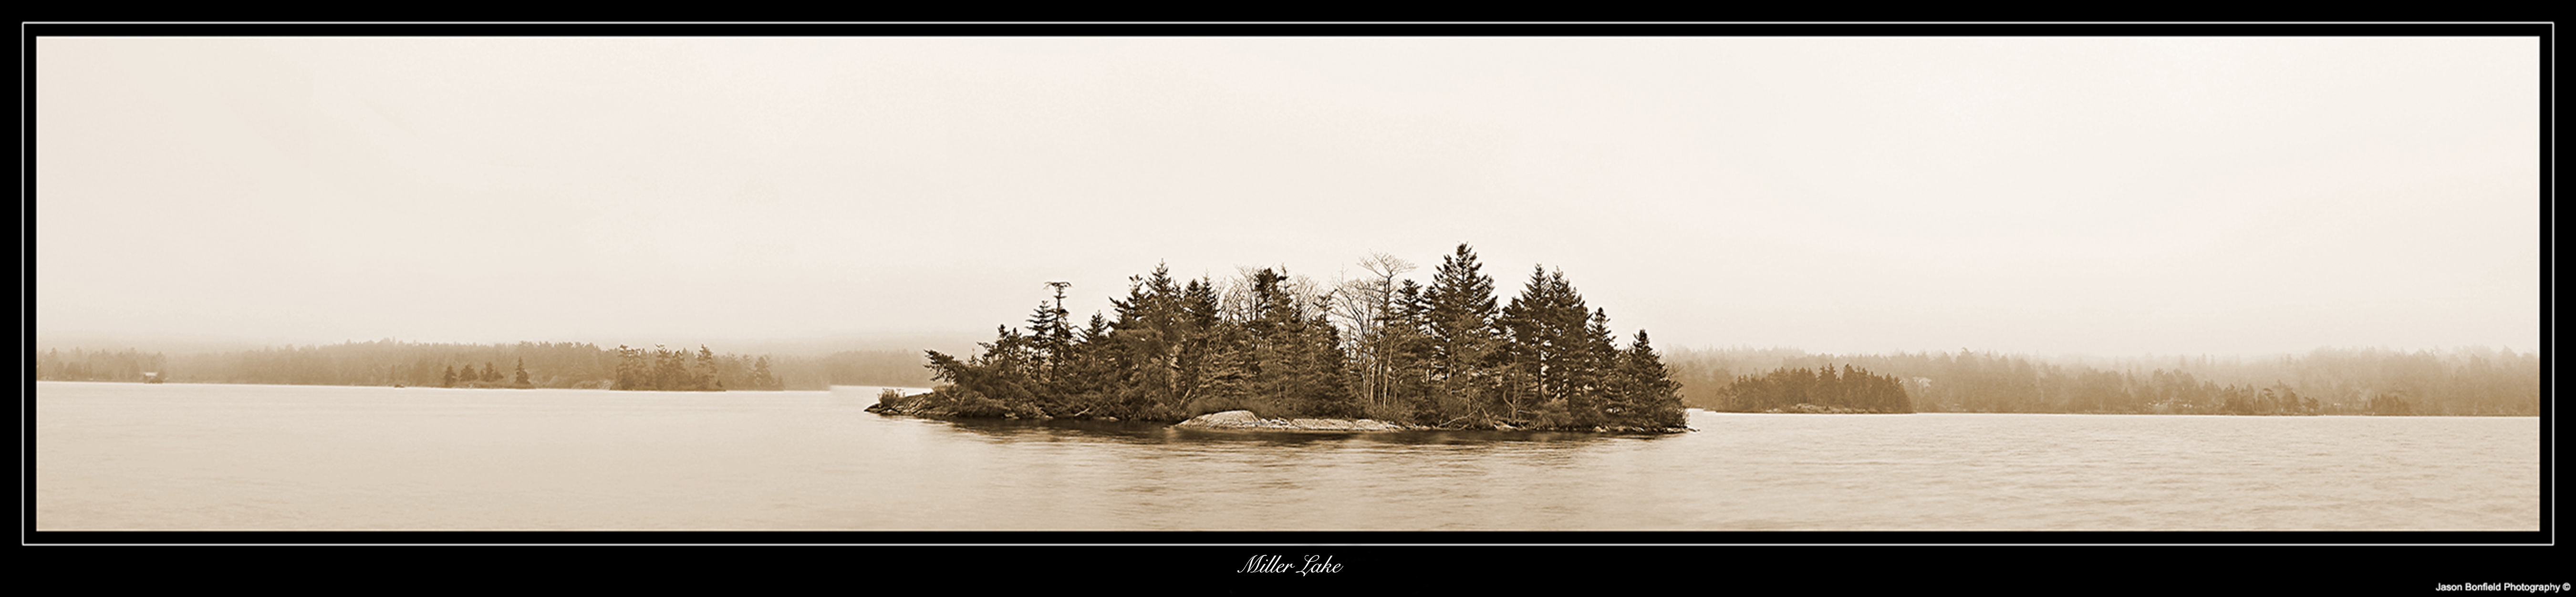 Sepia panoramic landscape picture of small island on Miller Lake in Halifax, Nova Scotia, Canada.